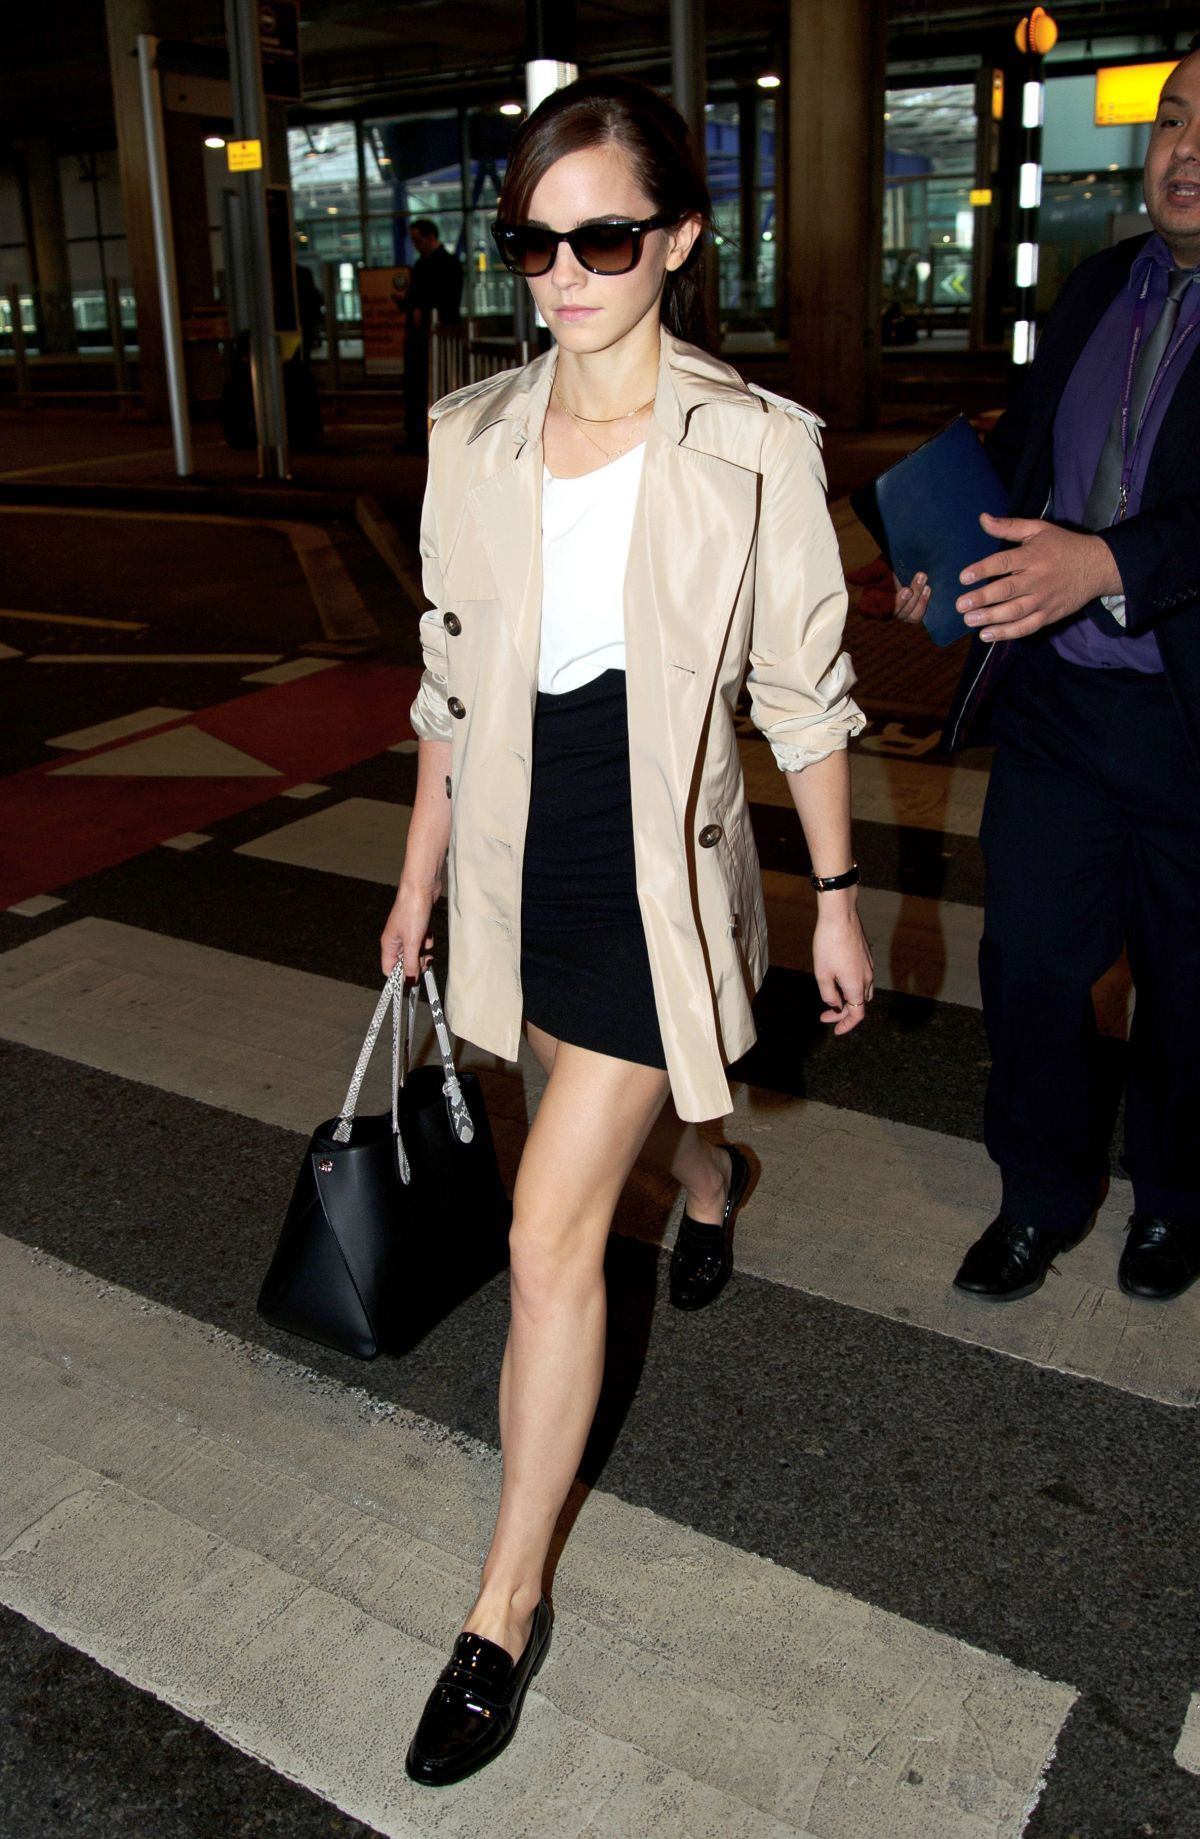 Emma Watson Sandro Roche Combo Dress Winser London Short Trench Coat Meandher Valentina Loafers And Ch Fashion Emma Watson Style Celebrity Fashion Trends [ 1839 x 1200 Pixel ]